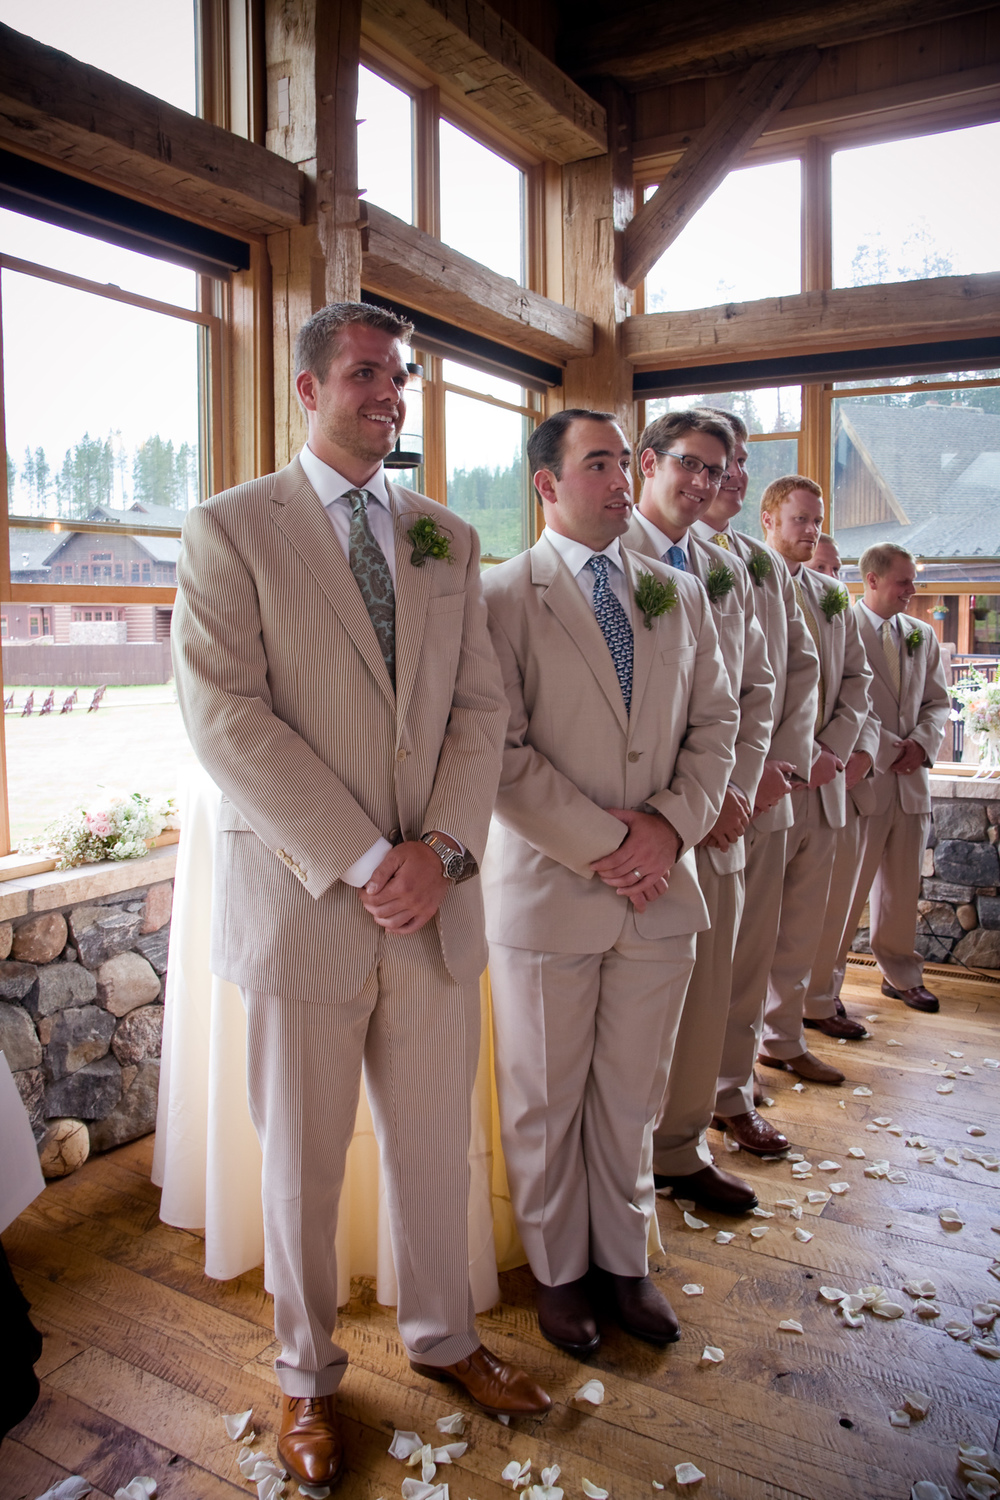 Devils_Thumb_Ranch_Wedding_029.JPG